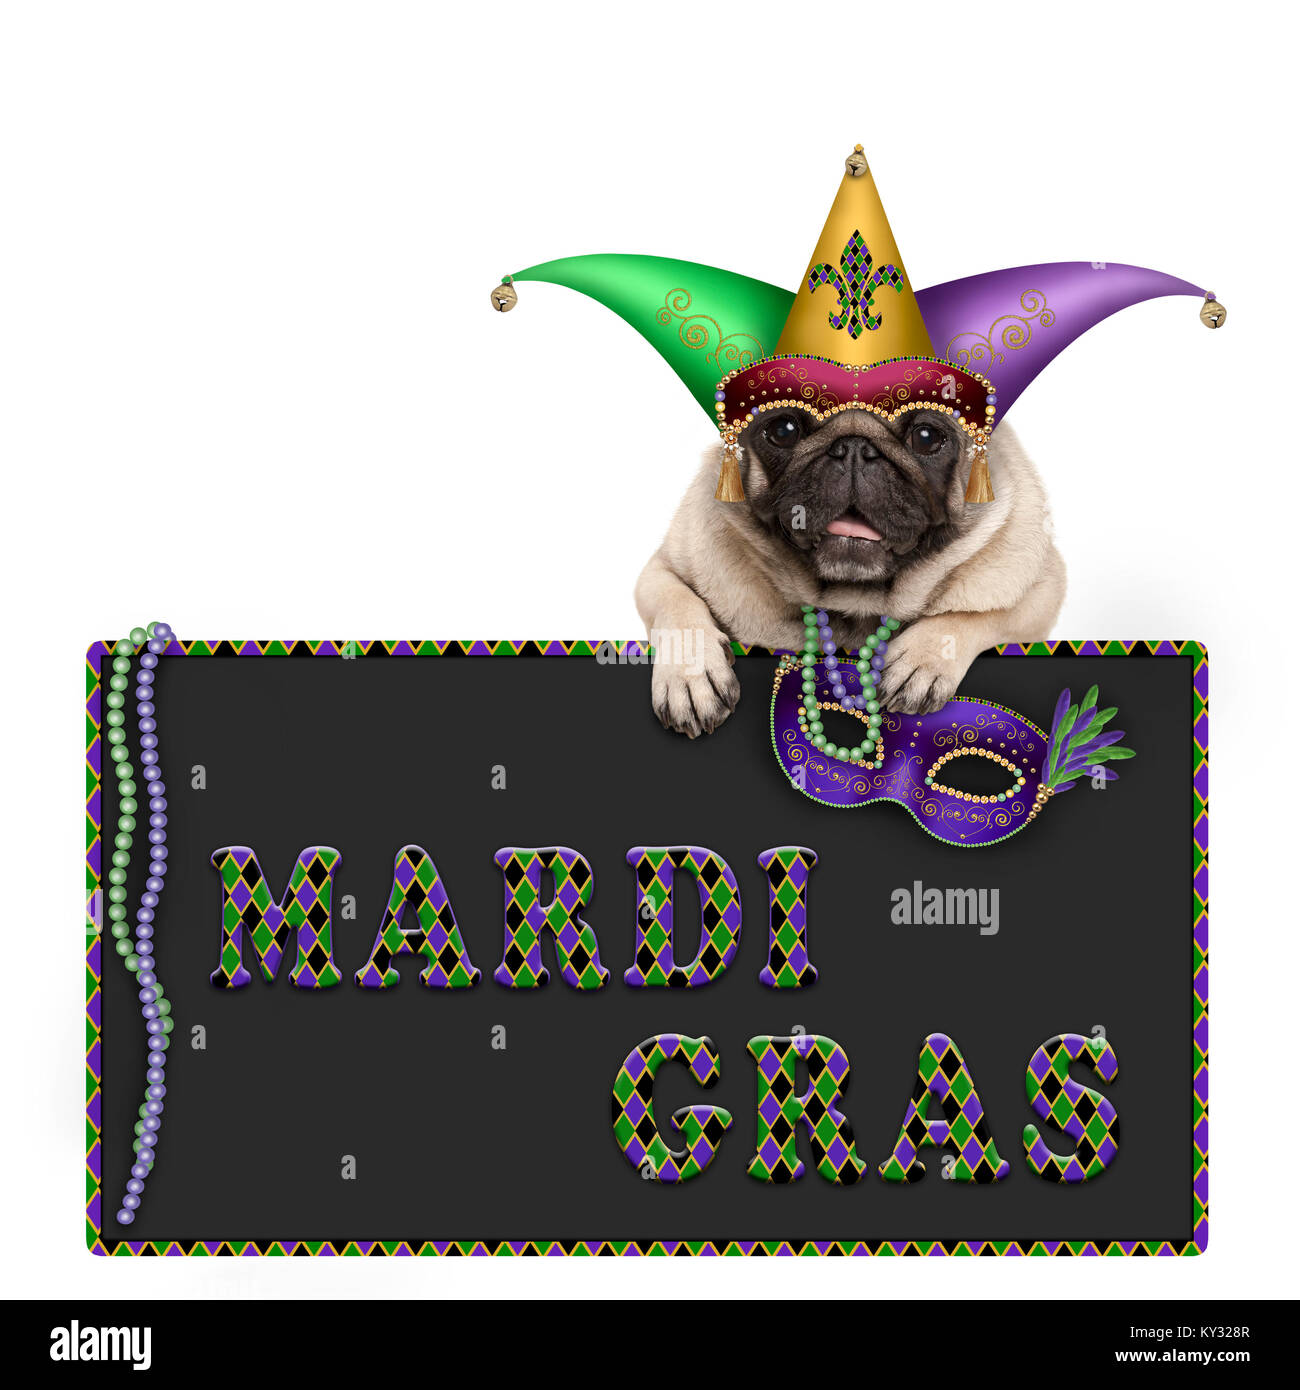 Mardi gras pug dog with carnival hat, beads and venetian mask hanging on blackboard sign with text, isolated on - Stock Image